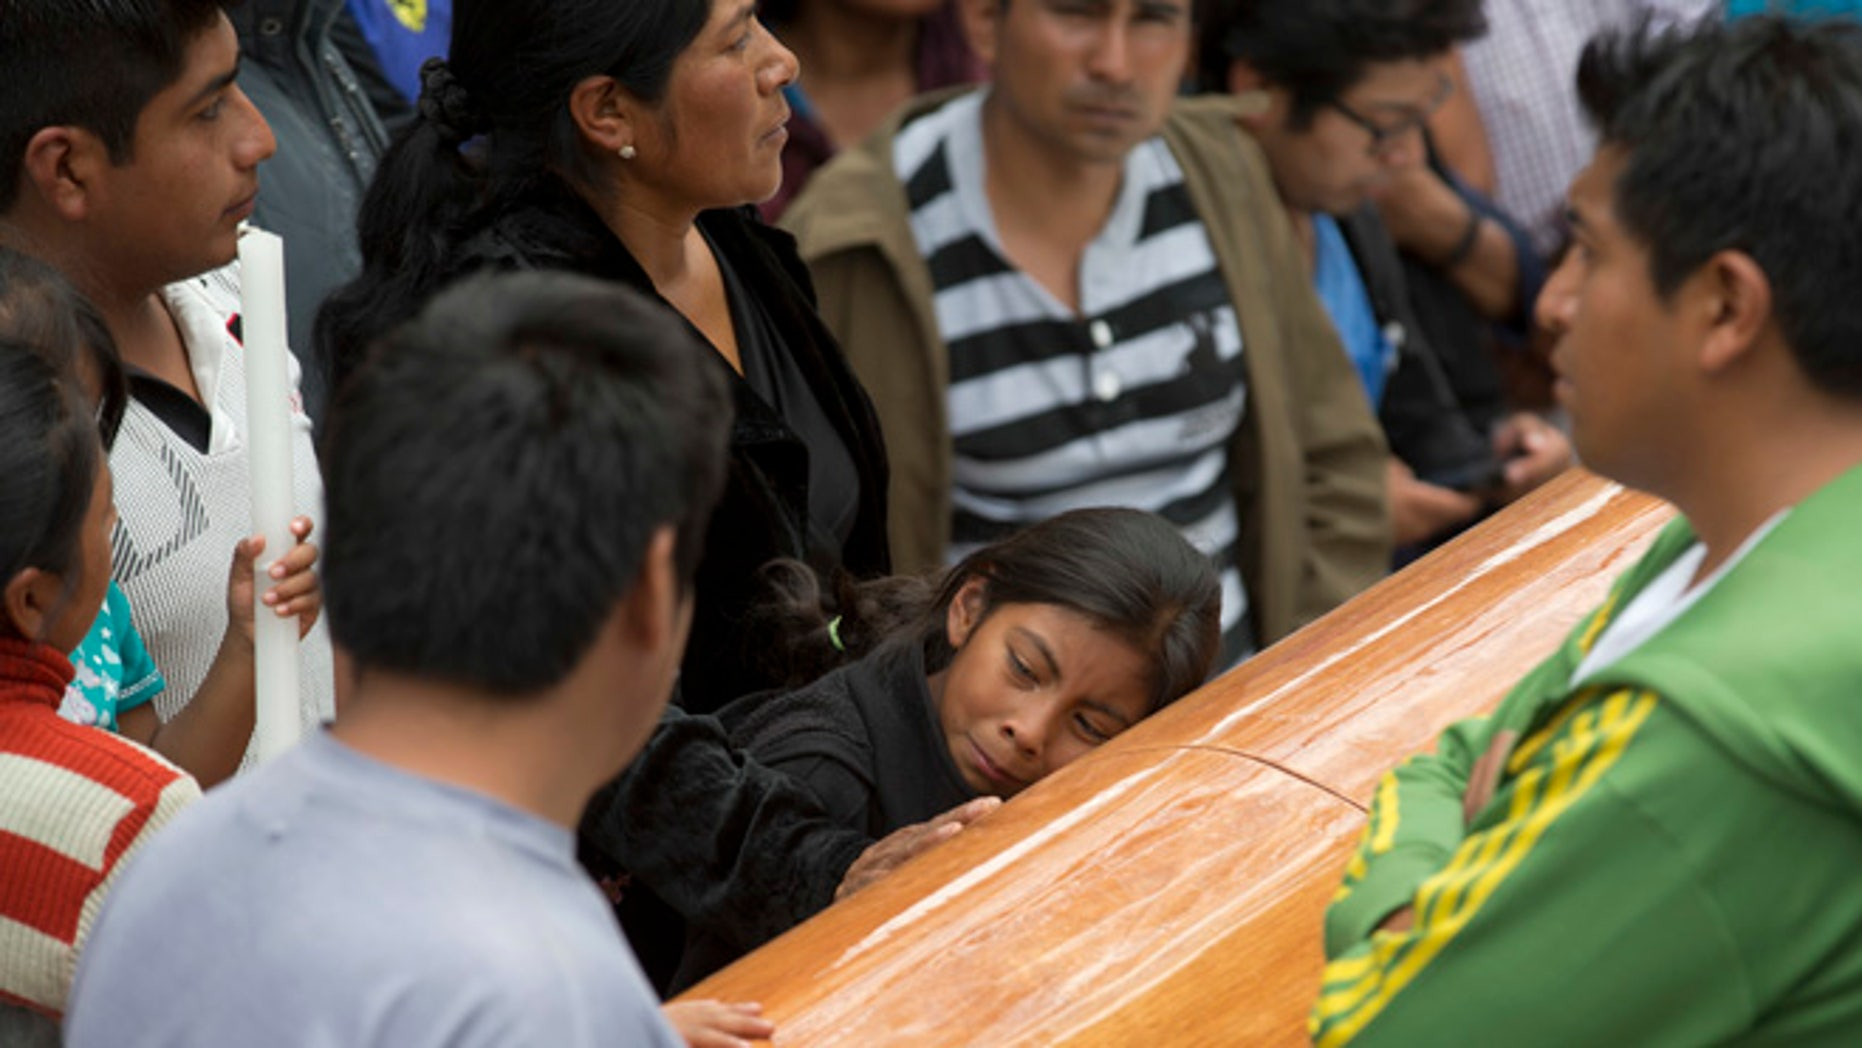 A girl embraces the coffin with the body of Yalid Jimenez, 29, who died yesterday during the clearing of the highway in Nochixtlan, Mexico, Monday, June 20, 2016. Violence erupted during the weekend in which six people died in confrontations between the police and striking teachers. The teachers are protesting against plans to overhaul the country's education system which include federally mandated teacher evaluations. (AP Photo/Eduardo Verdugo)